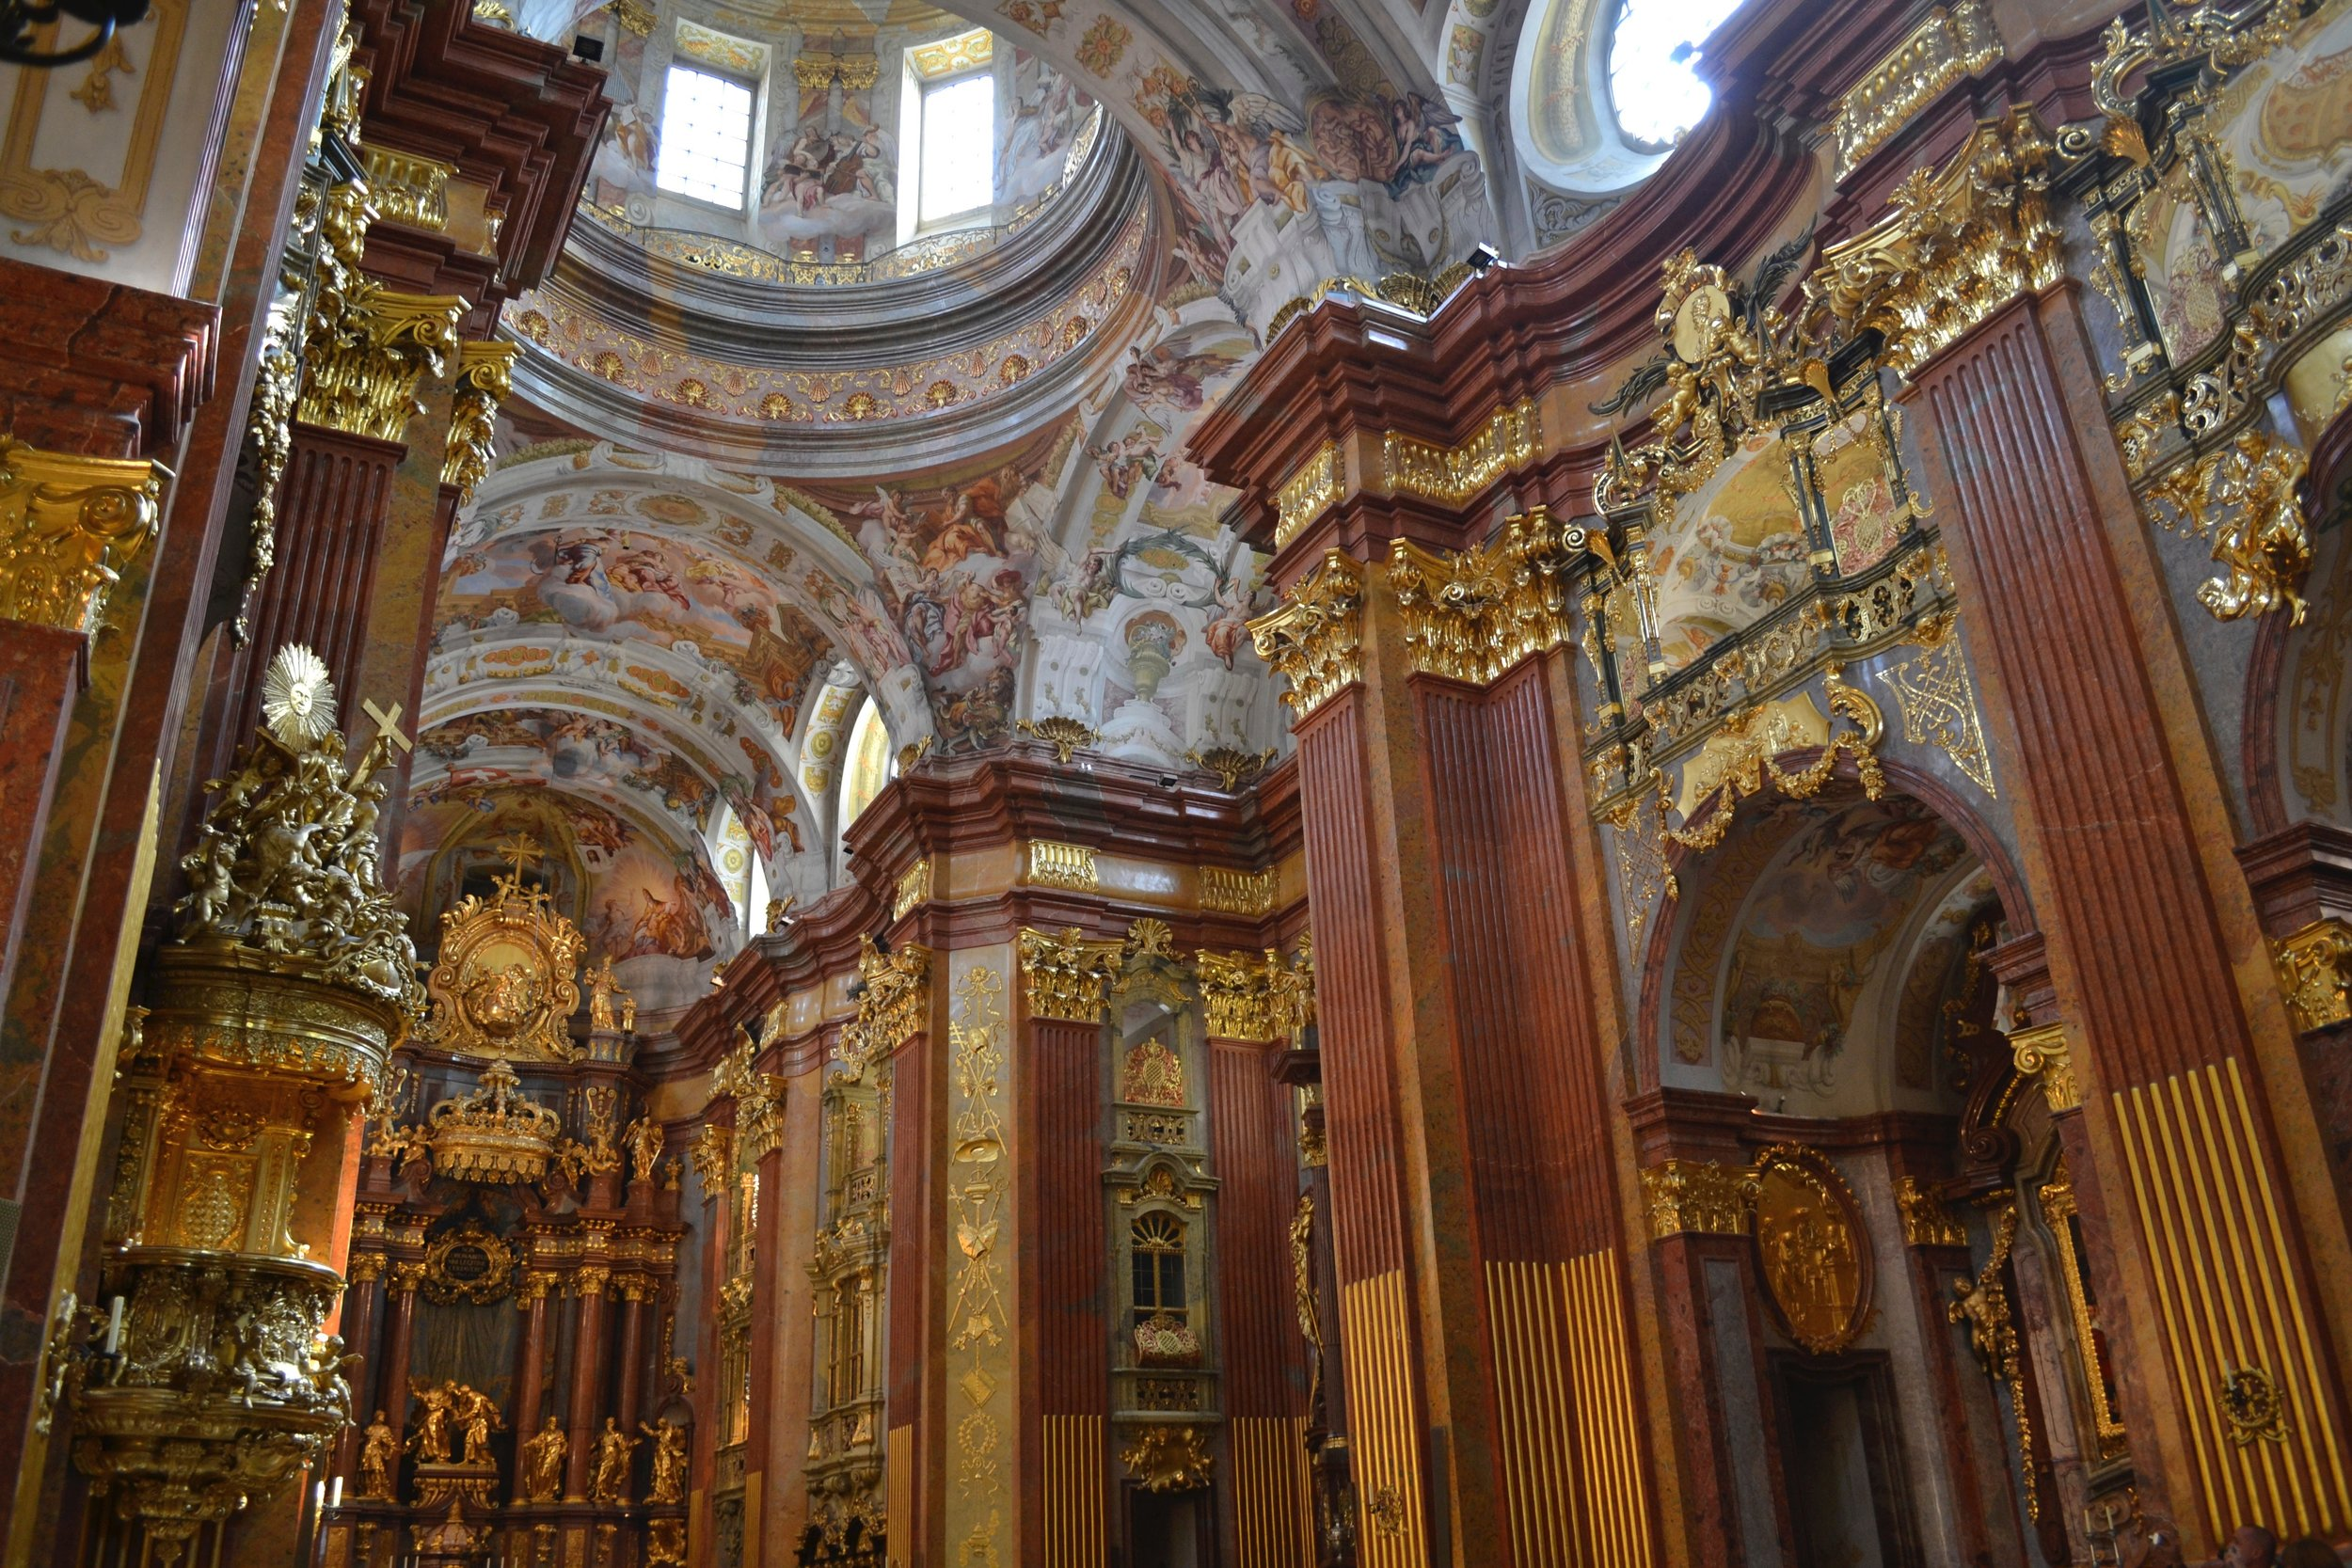 A view of the interior of Melk Abbey in Austria